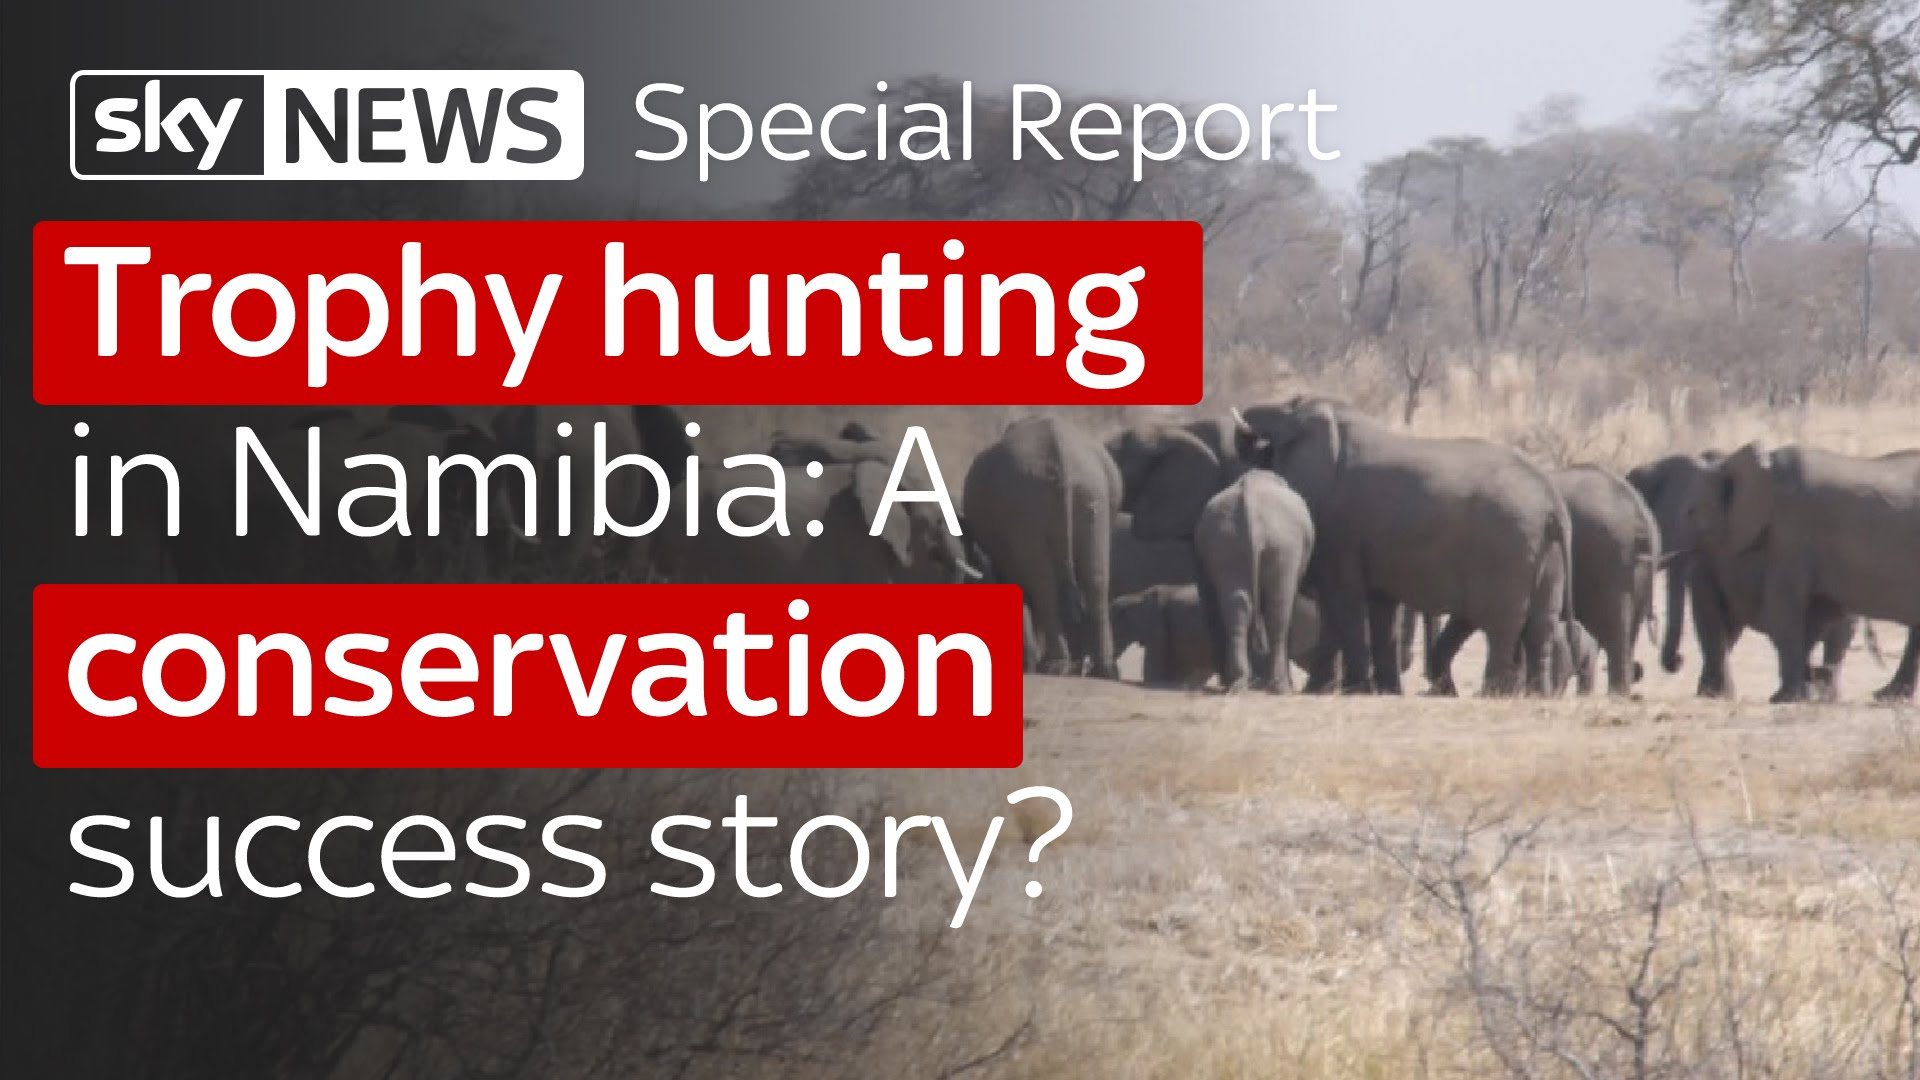 Trophy hunting in Namibia: A conservation success story? 13